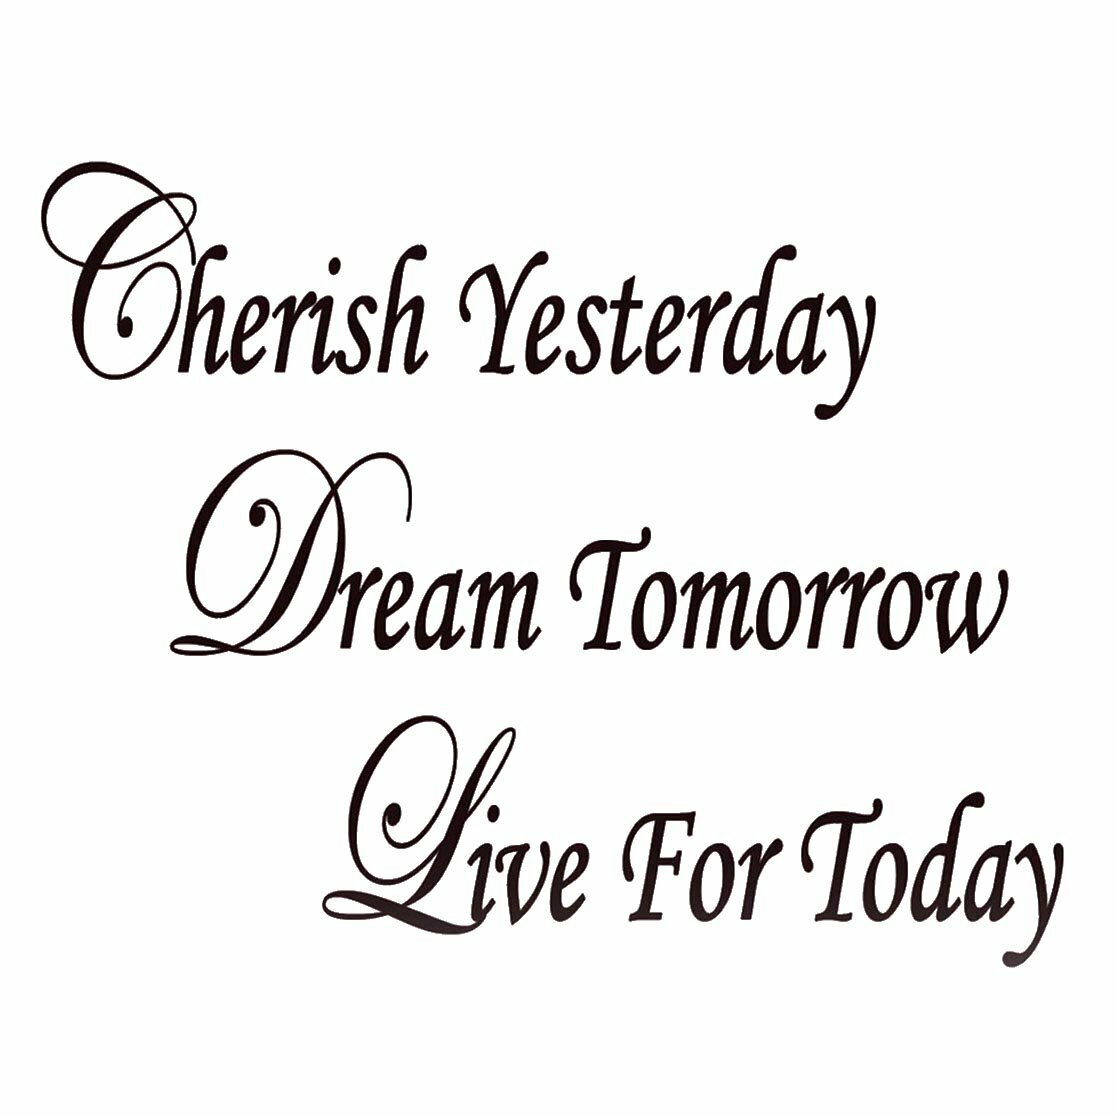 winston porter cobbett cherish yesterday dream tomorrow live today